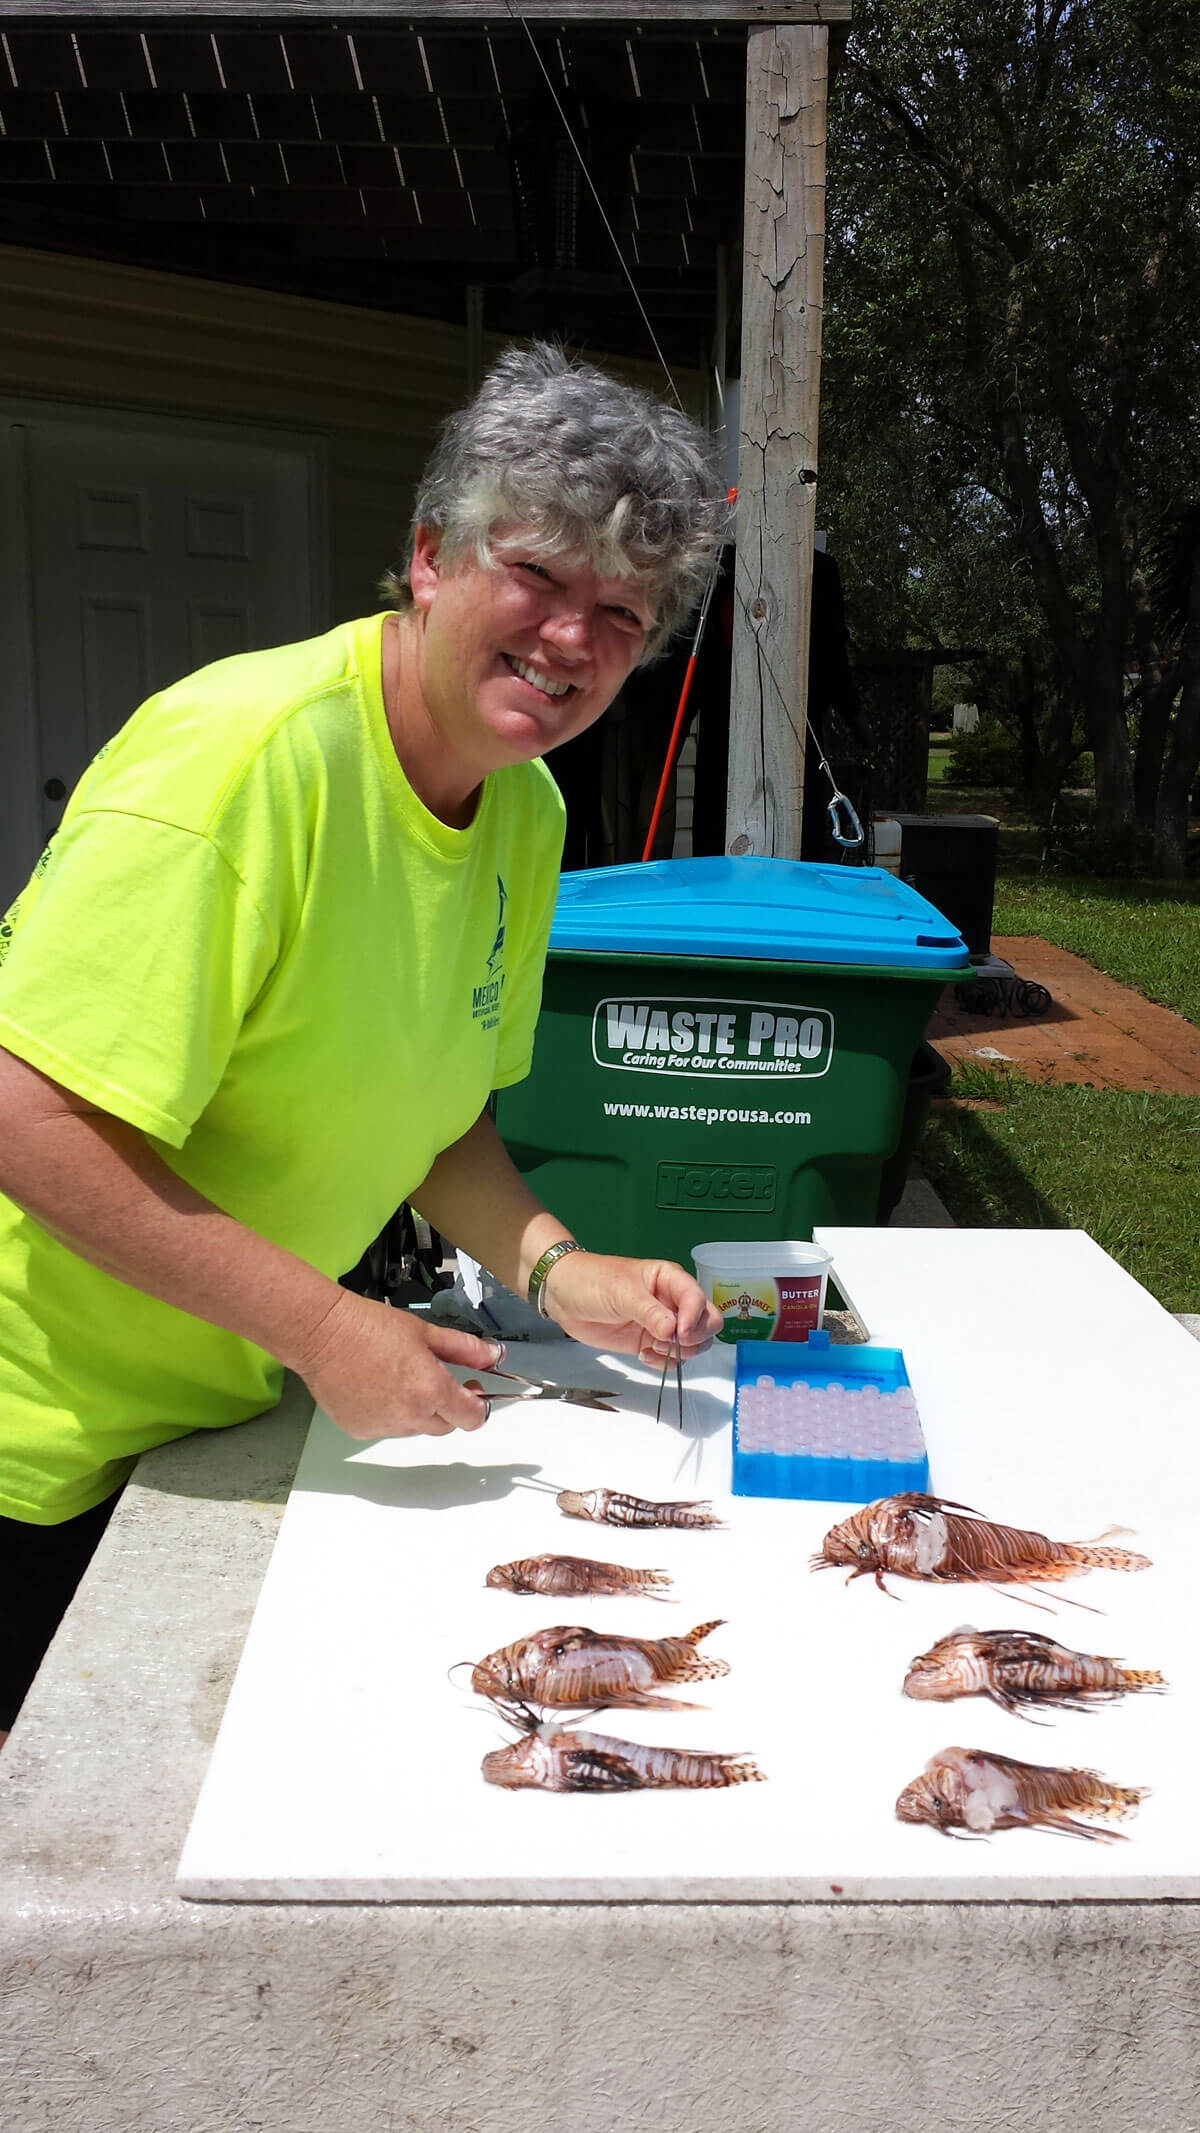 Carol COx cleaning lionfish